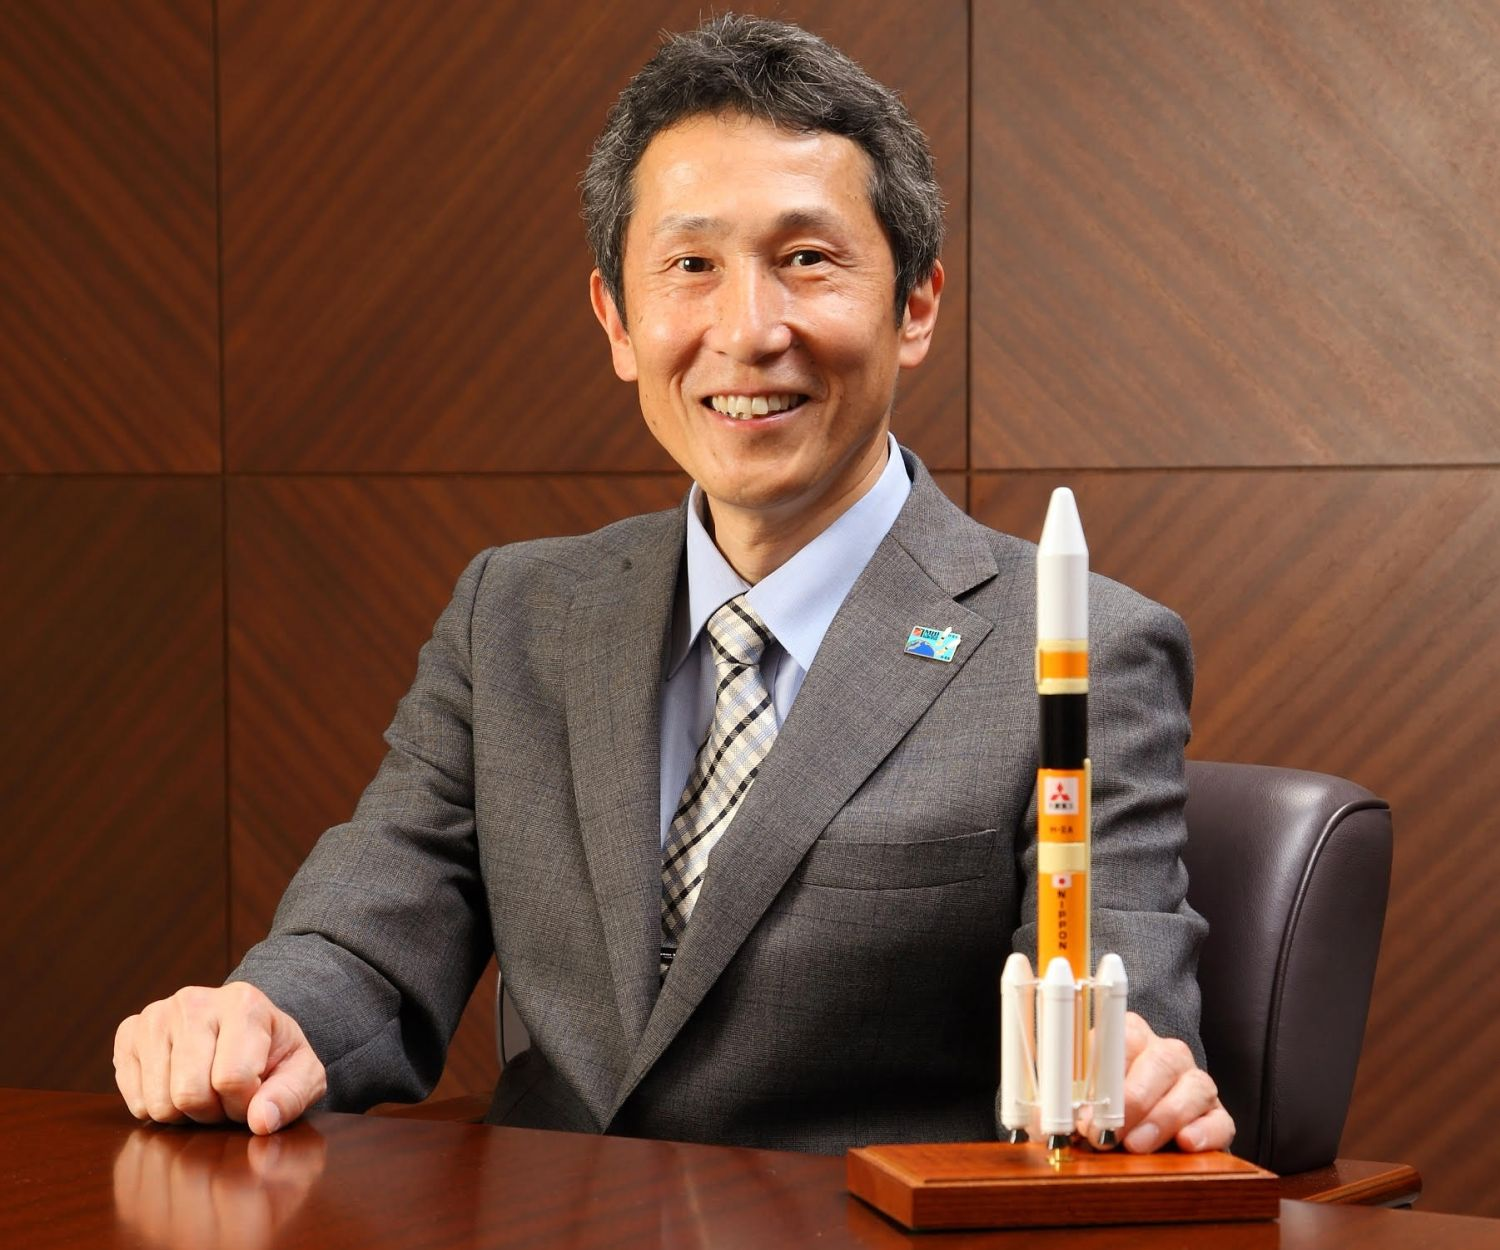 Ko Ogasawara, vice president & general manager of Space Systems at Mitsubishi Heavy Industries, poses with a model of an H-2A rocket.